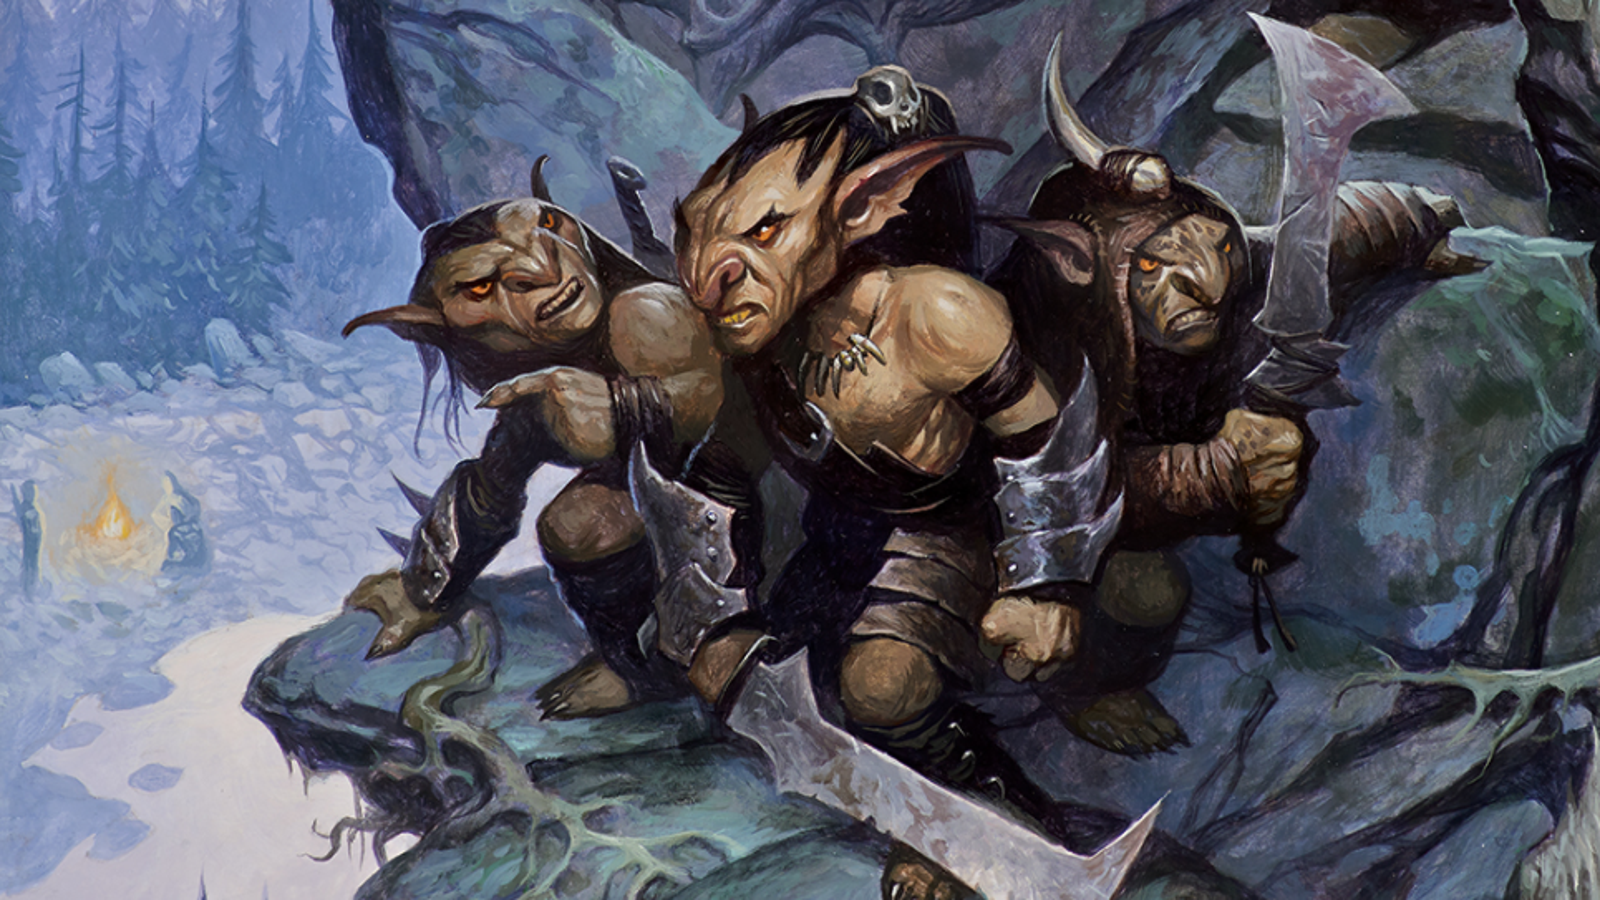 Goblin Fights In D&D Are The Worst